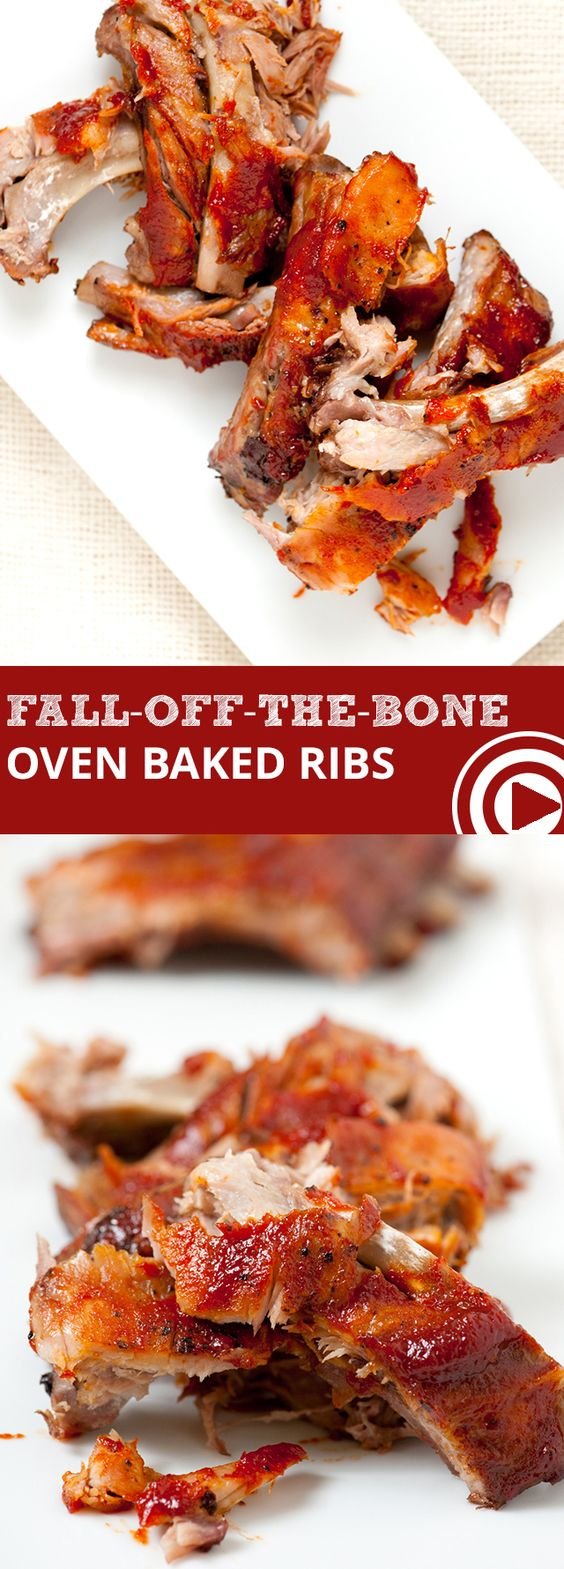 Easy Fall-Off-The-Bone Oven Baked Ribs with Video - Baking low and slow is the secret to these fall-off-the-bone oven baked ribs. Most of the recipe time is sitting back and relaxing waiting while the ribs bake. From inspiredtaste.net | @inspiredtaste